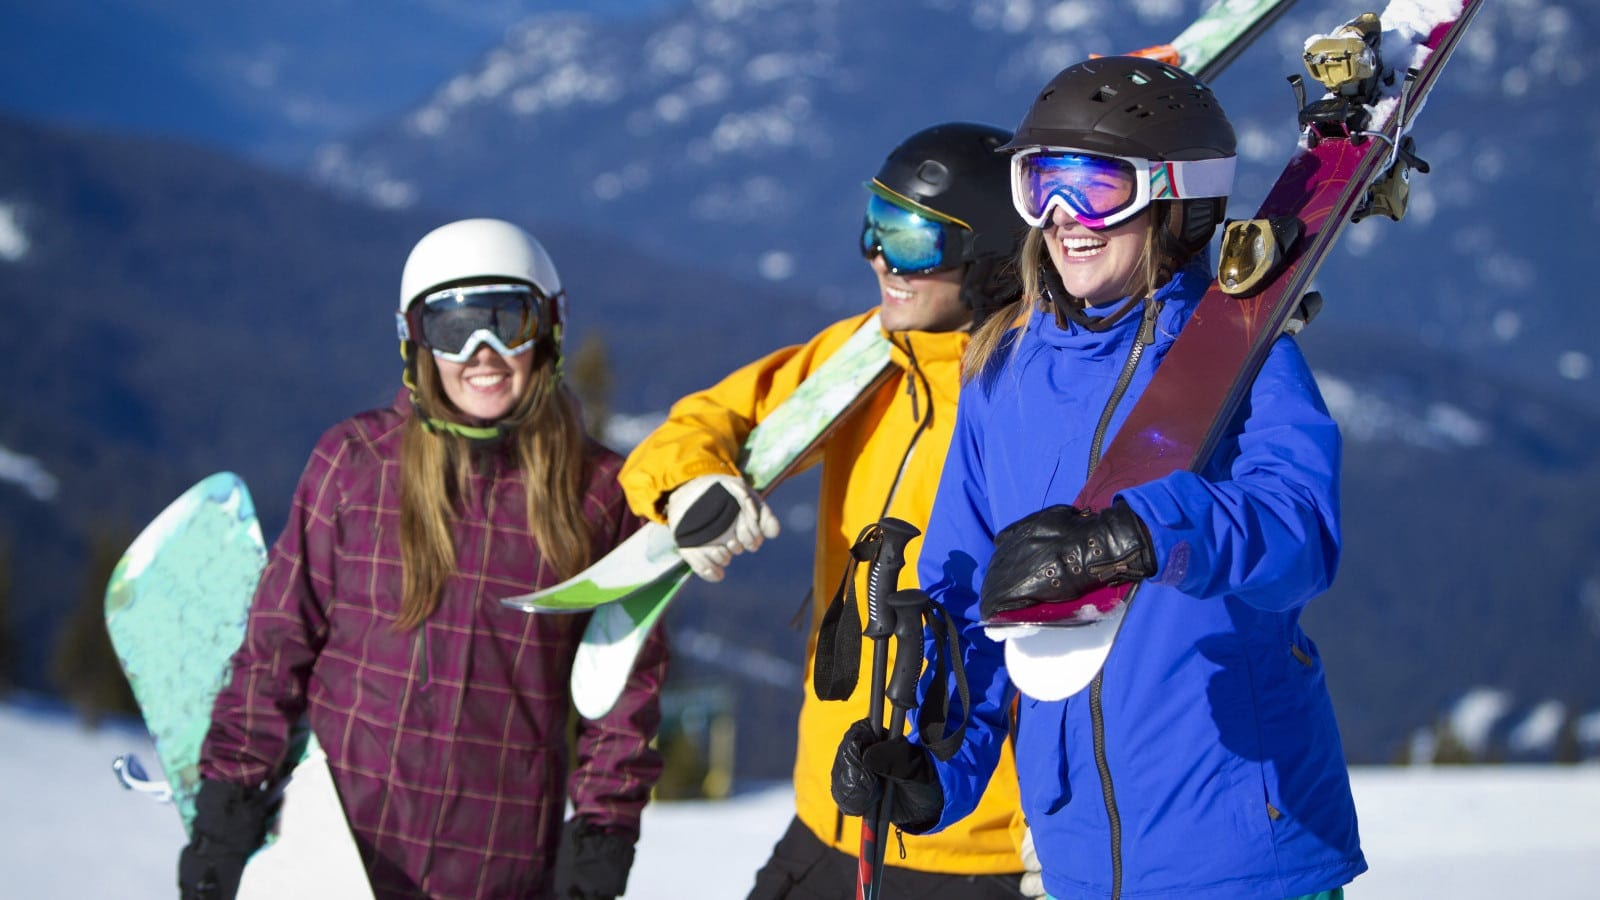 Friends Skiing And Snowboarding Stock Photo